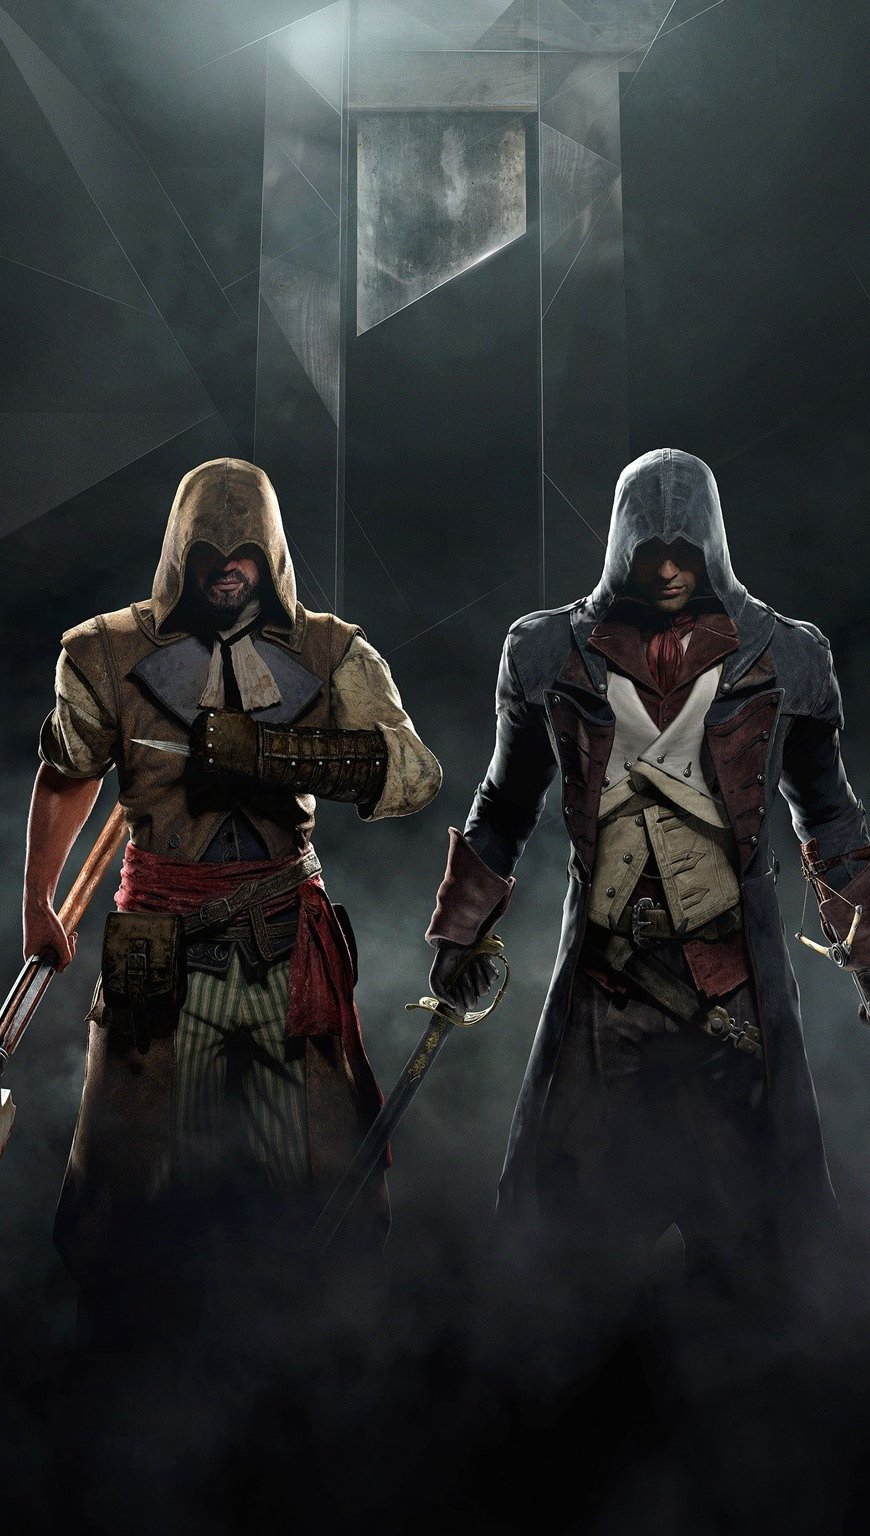 Fondos de pantalla Assassins Creed Unity Juego Vertical